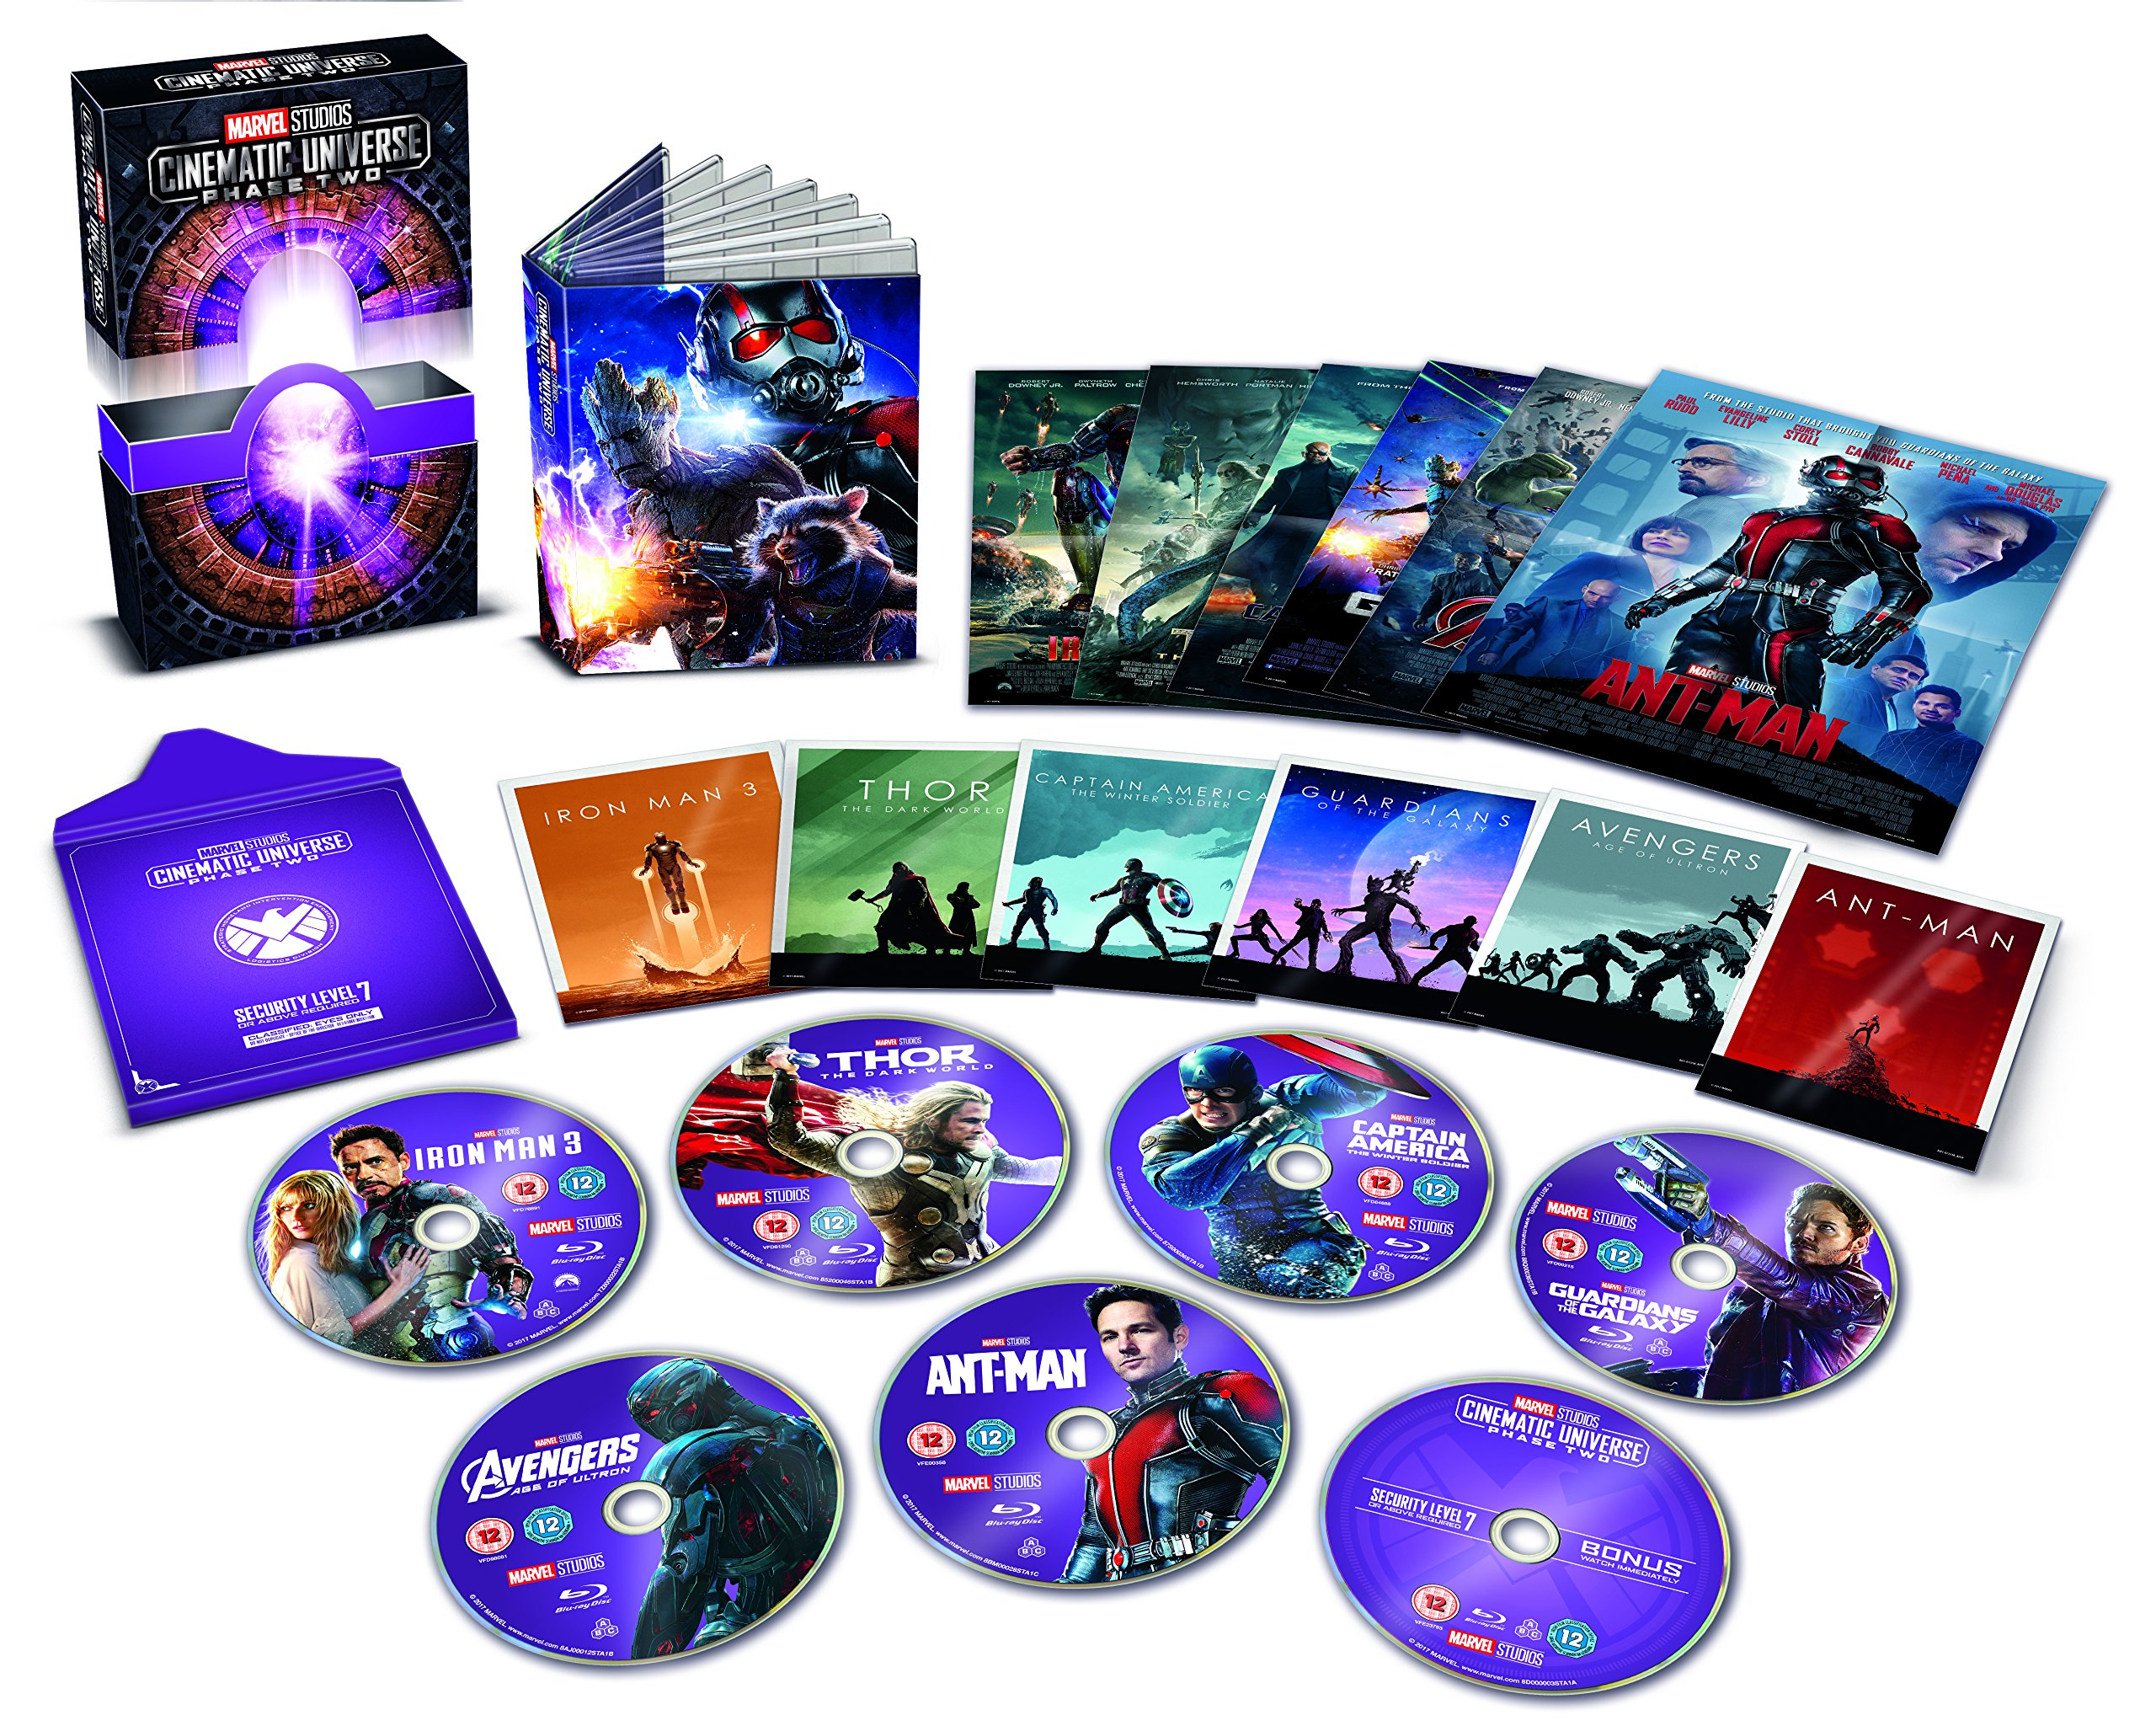 Marvel Cinematic Universe Phase 2 [Collector's Edition] [Blu-ray] [Region Free] [UK Import] by Walt Disney Studios HE